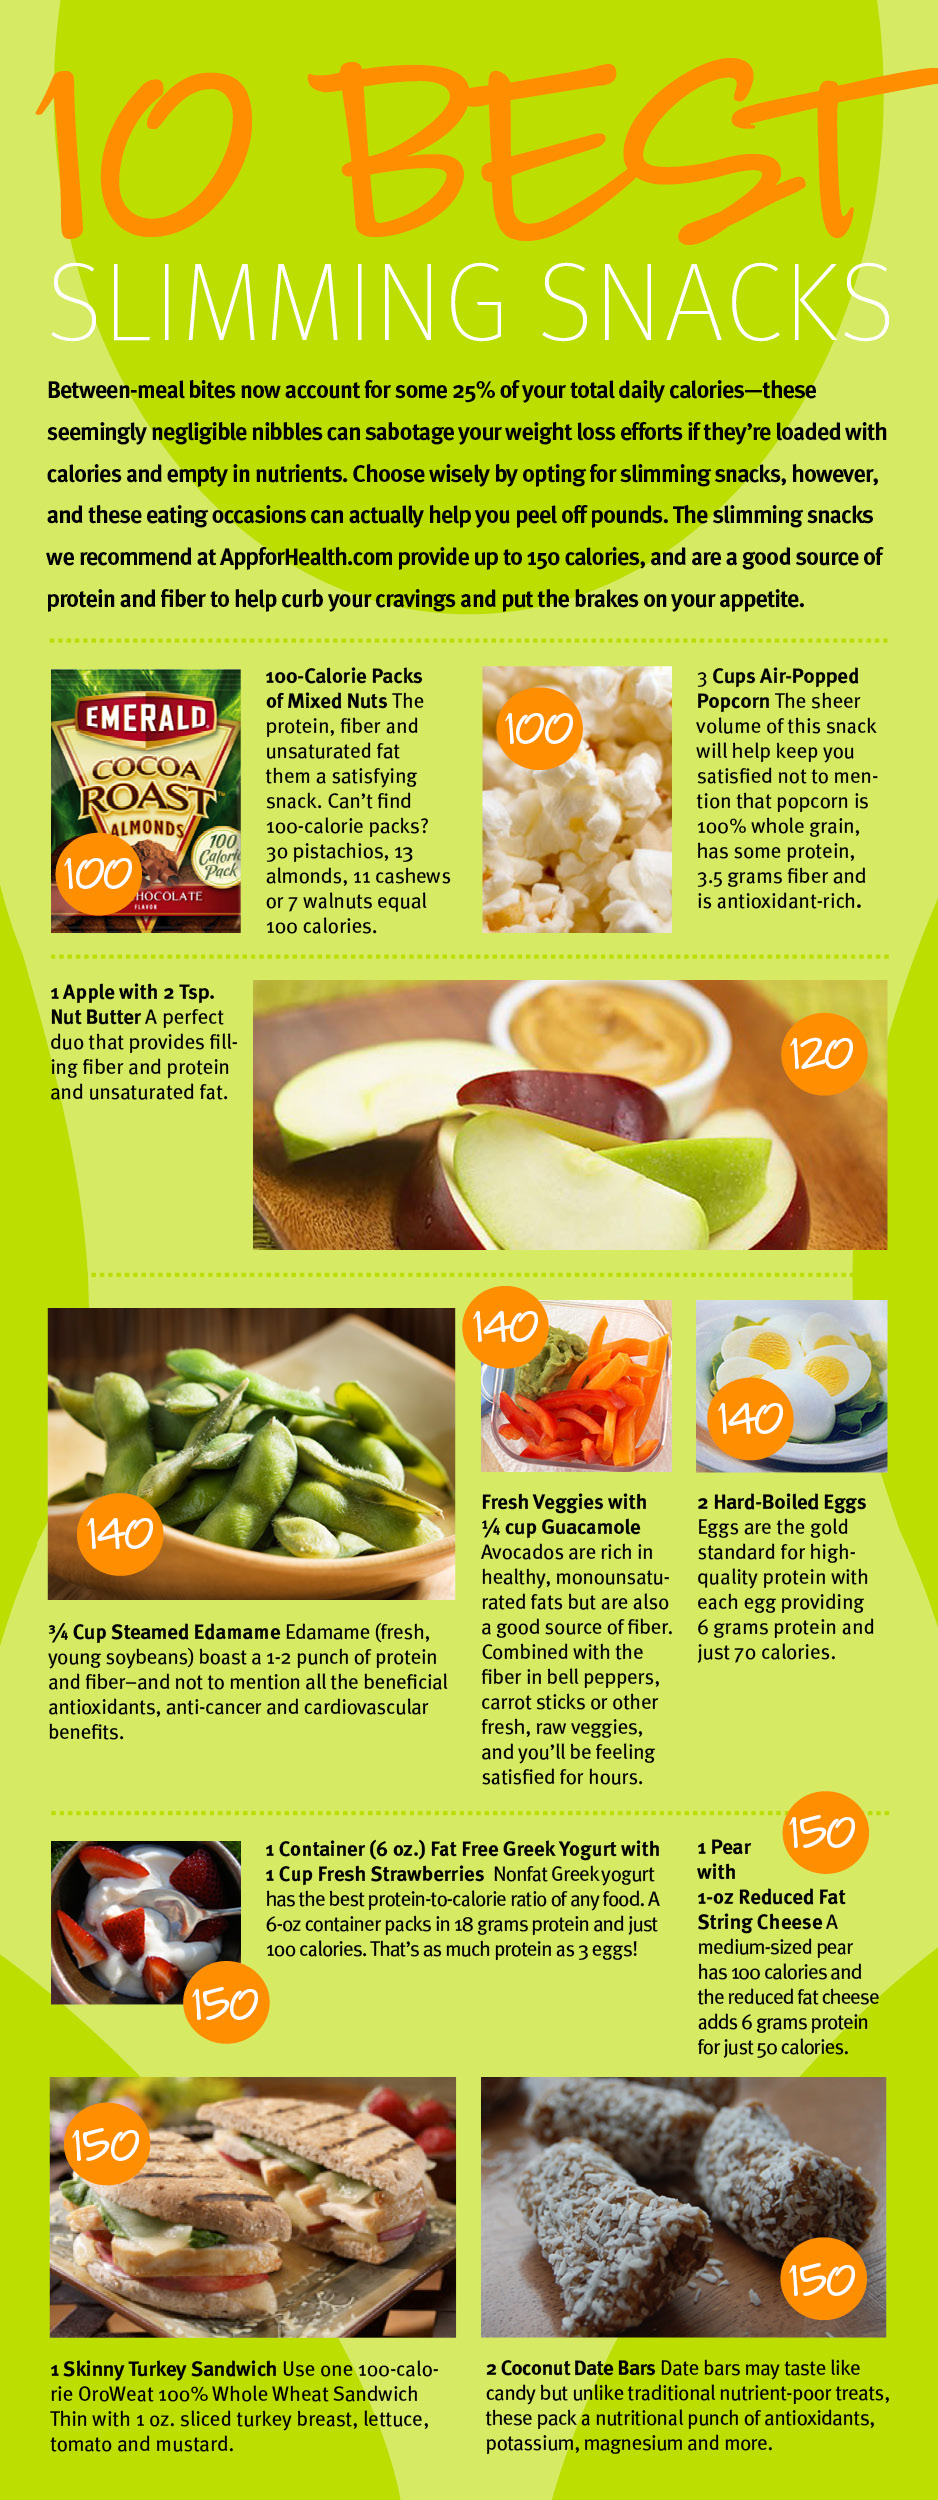 10 Slimming Snacks